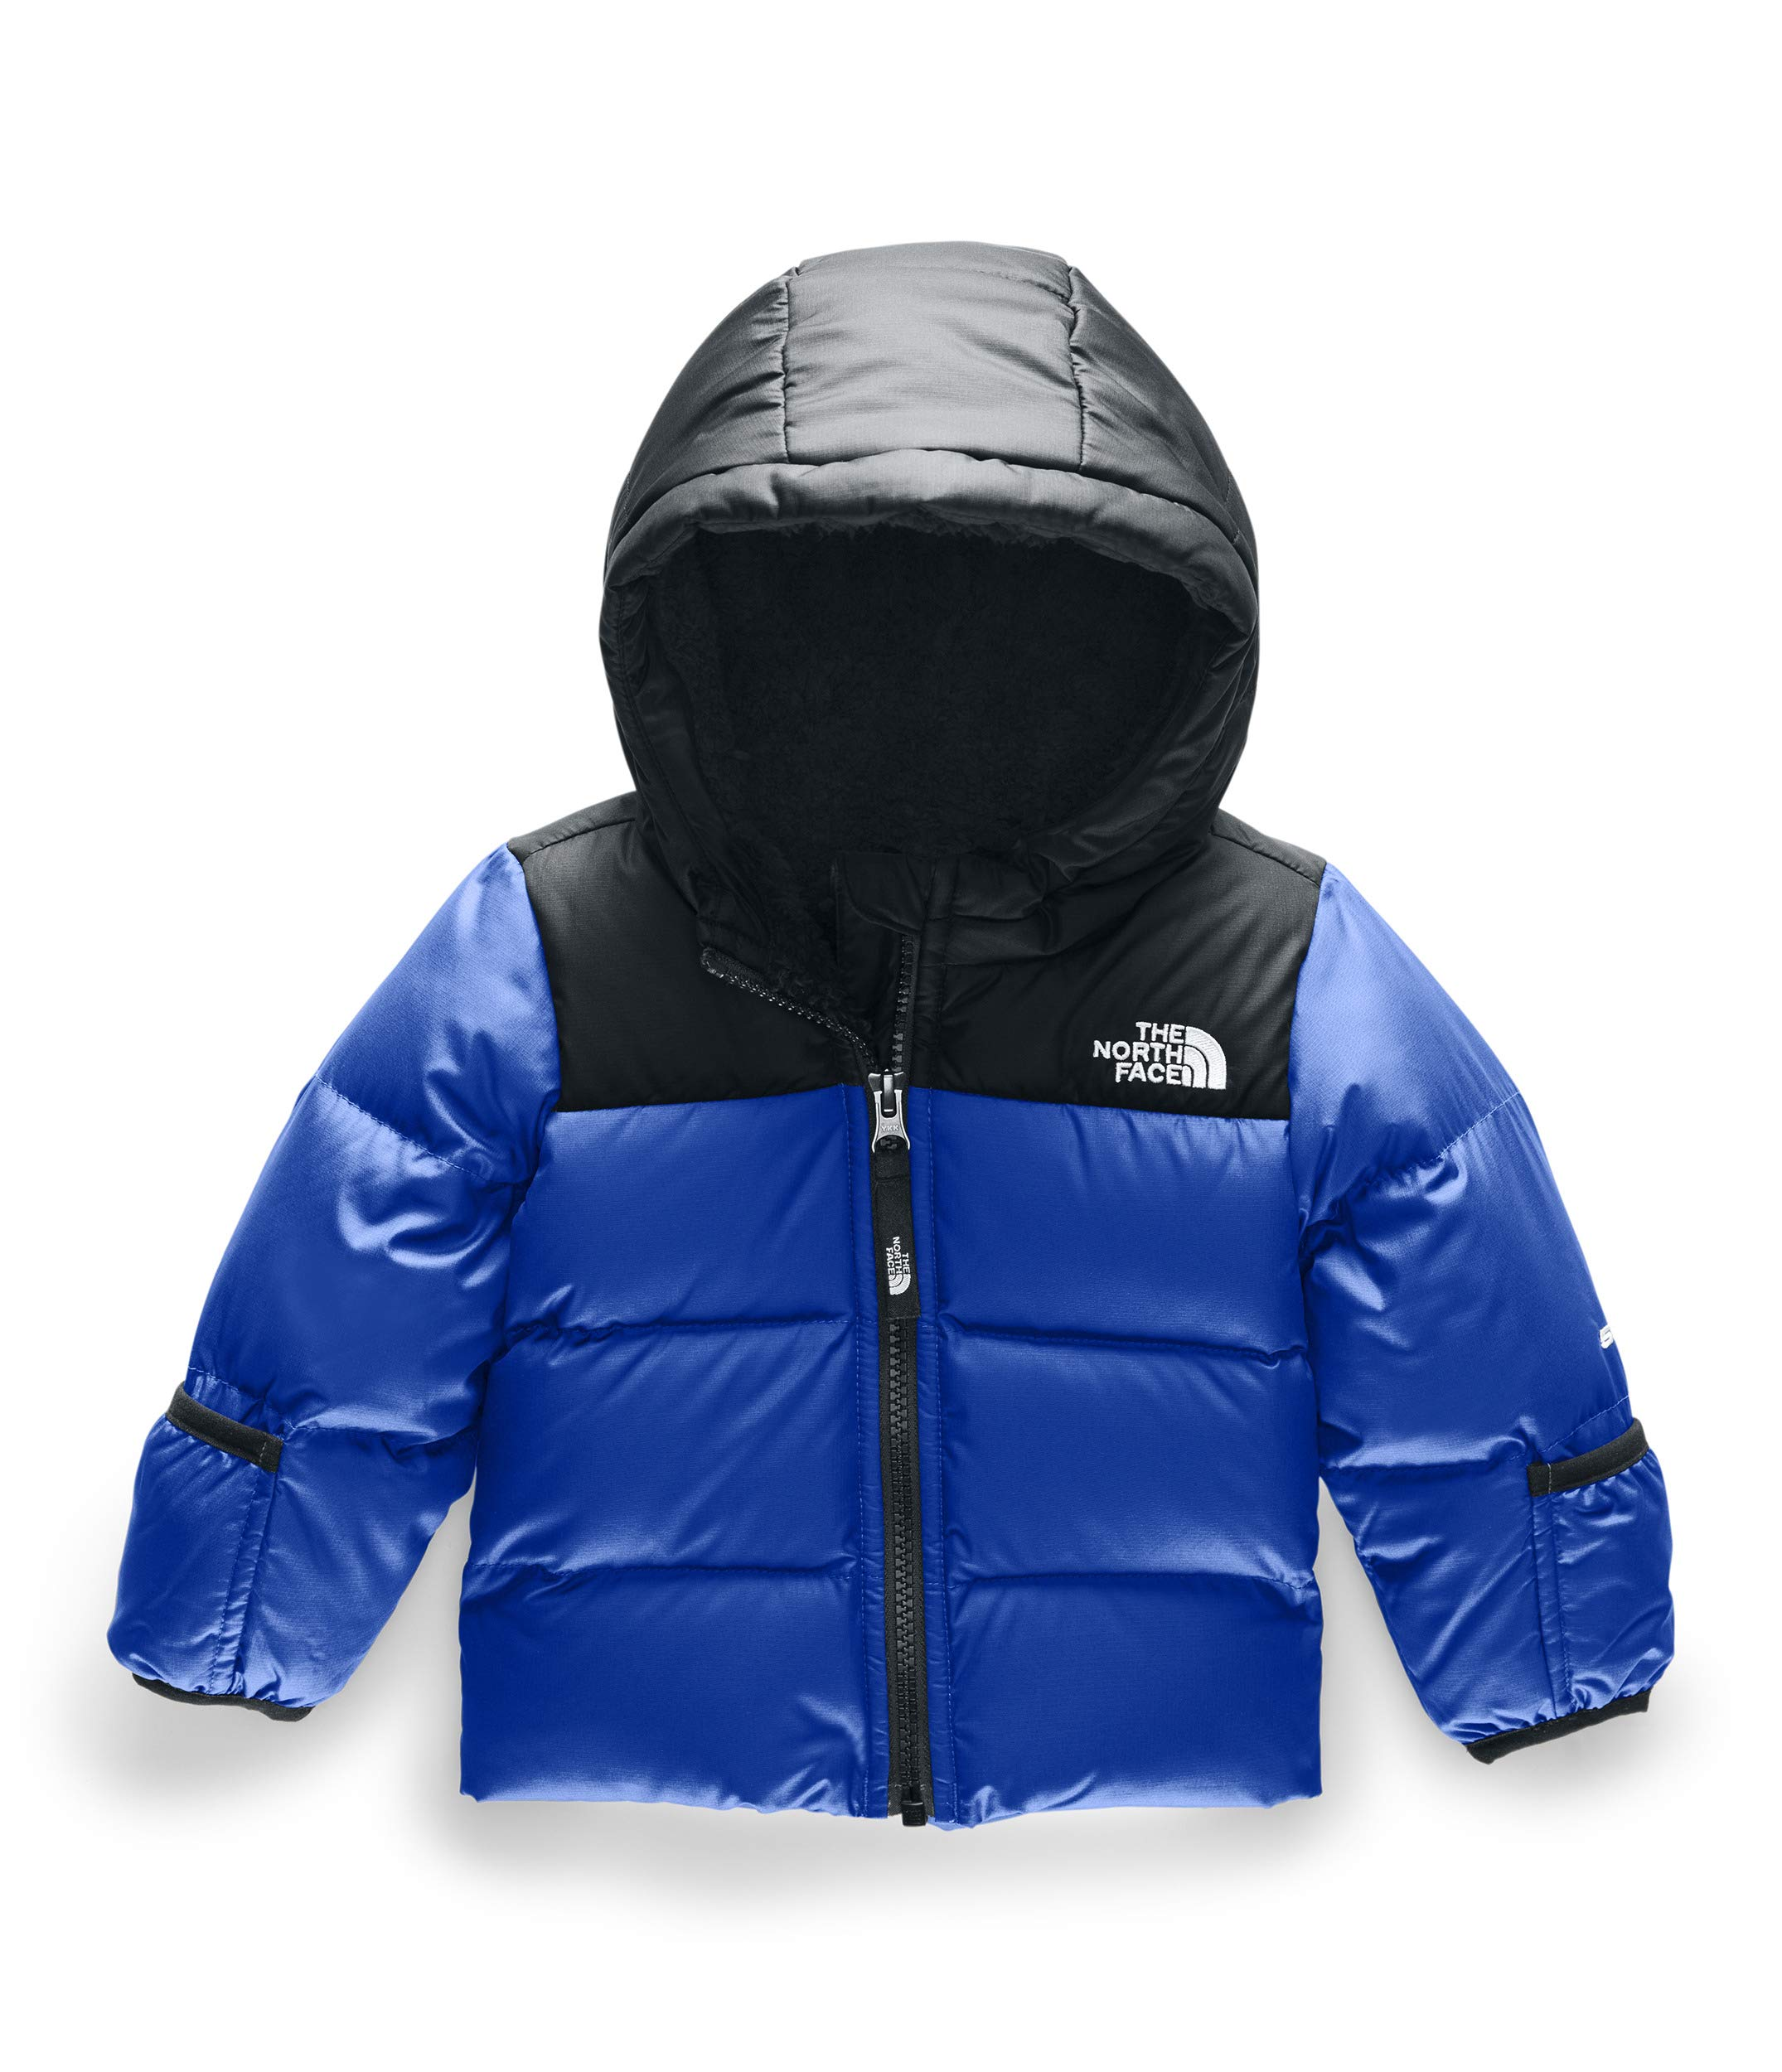 The North Face Infant Moondoggy 2.0 Down Jacket by The North Face